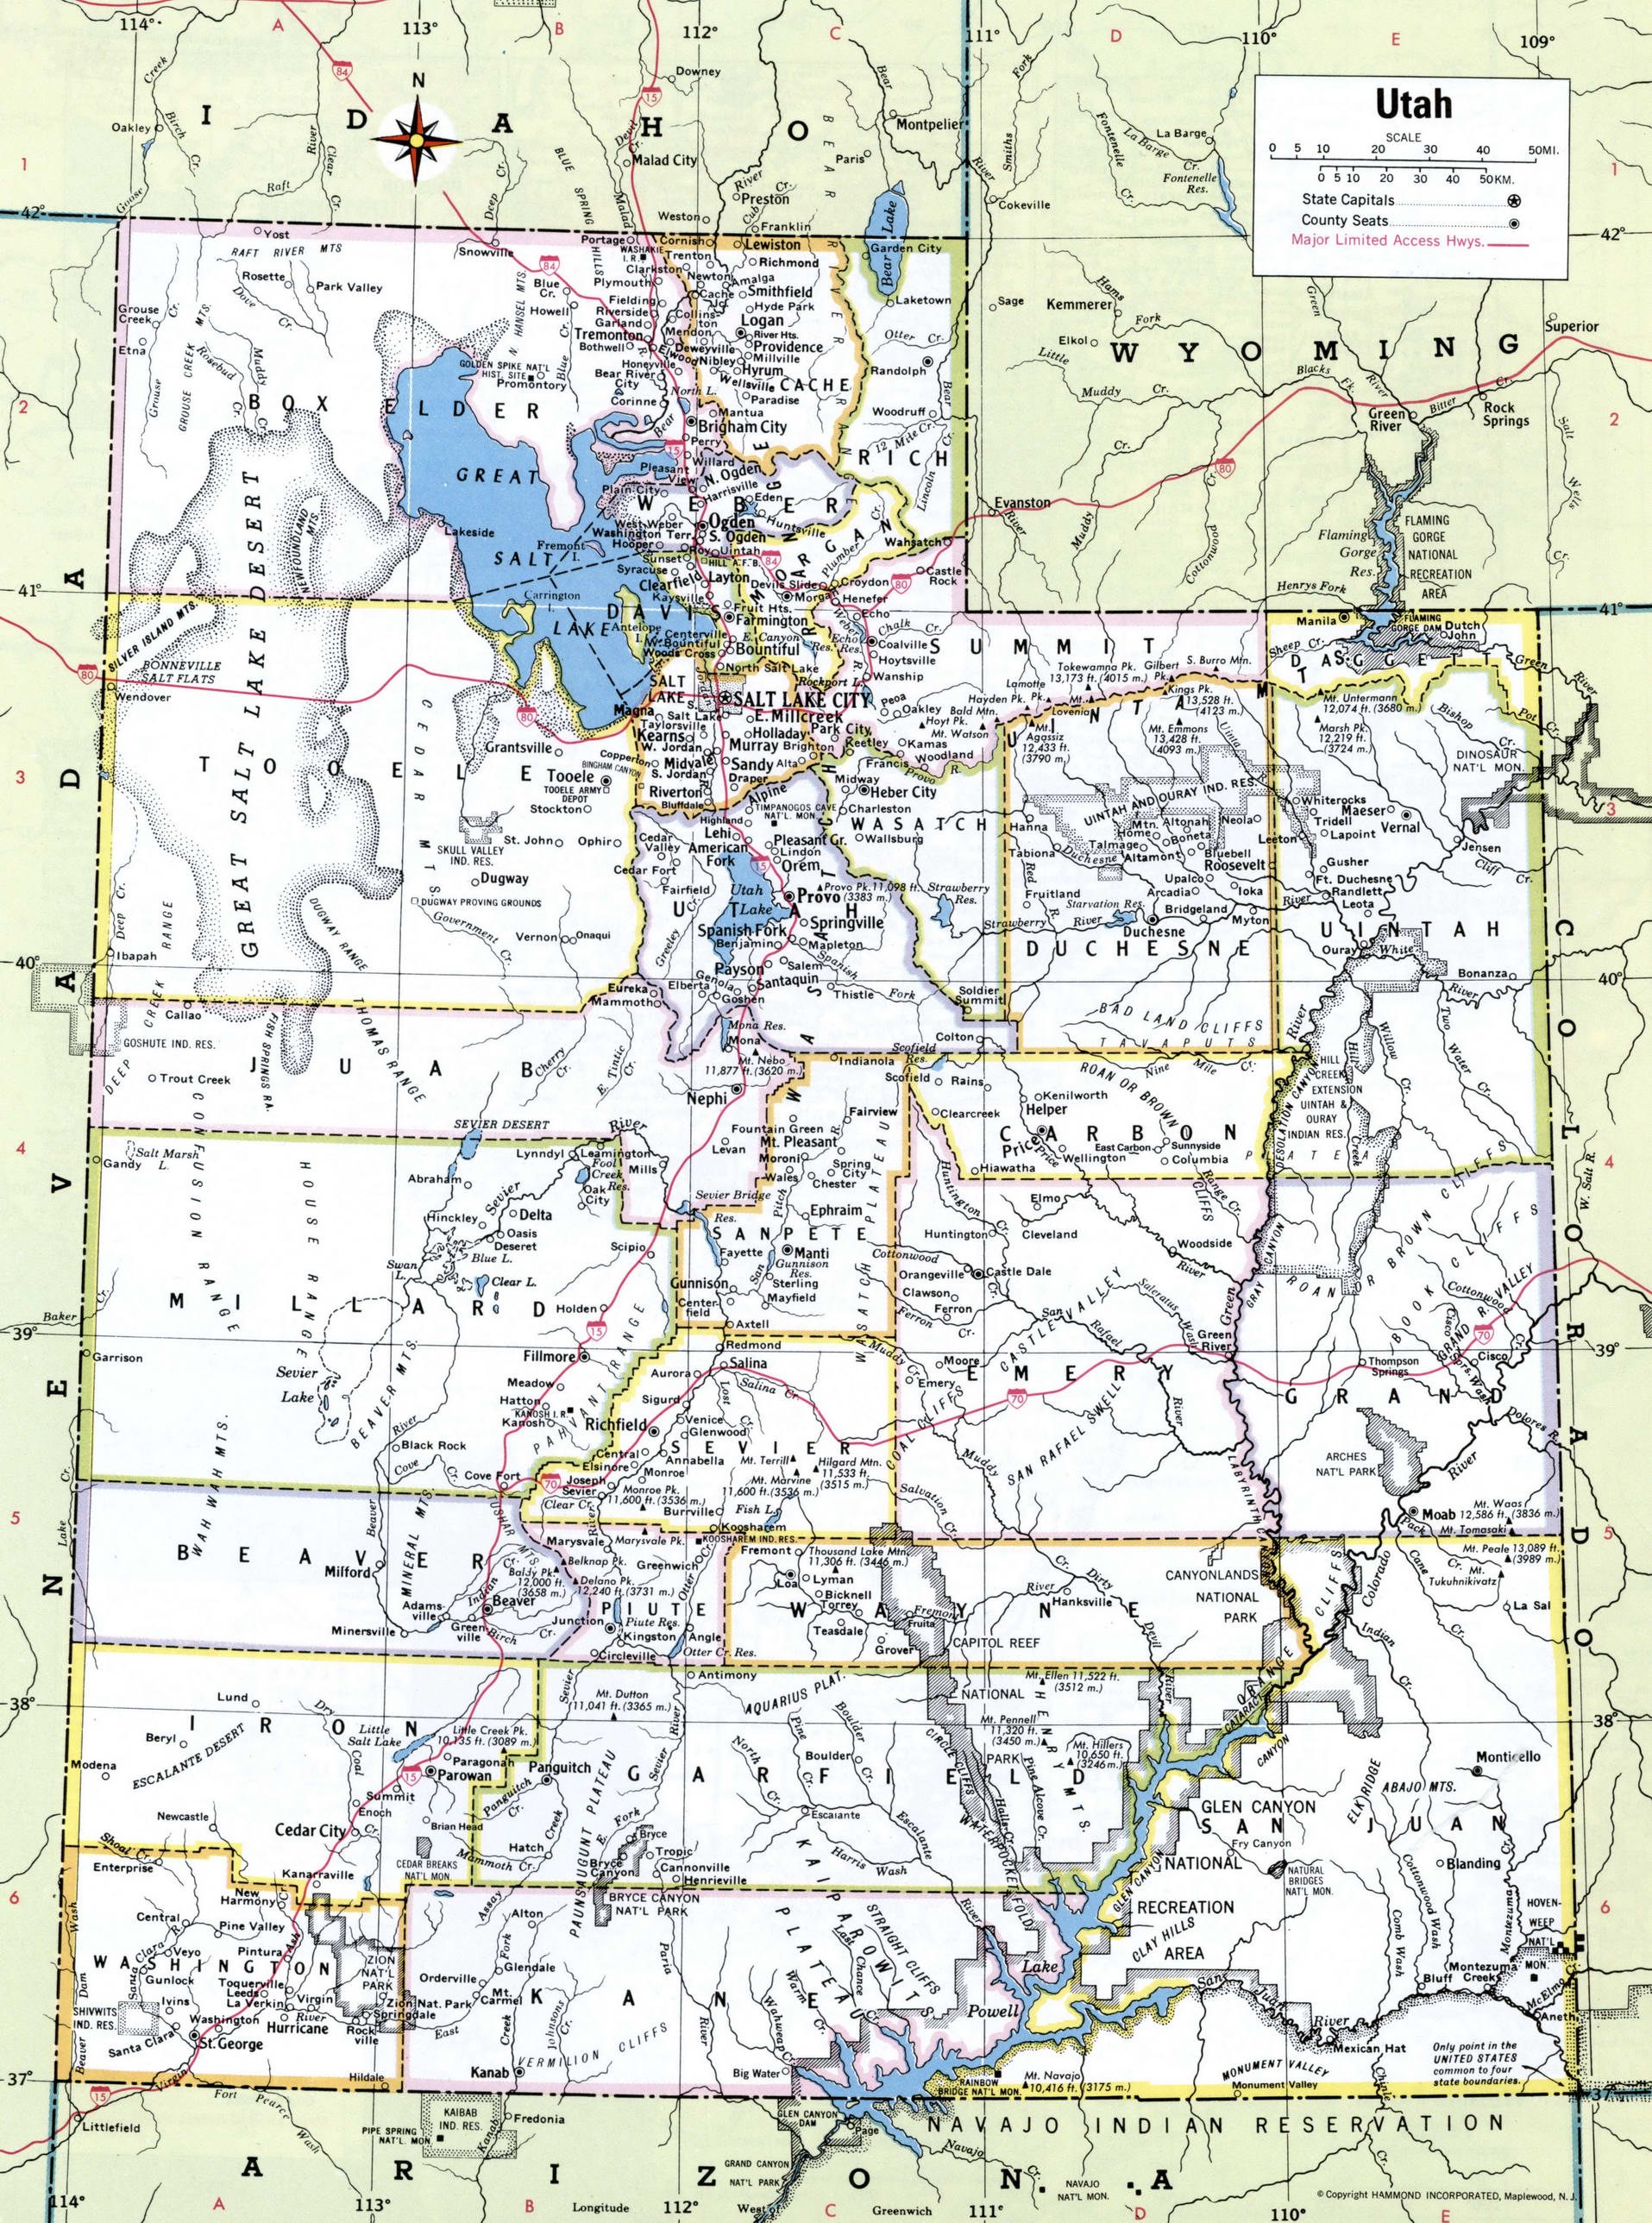 Utah map with counties